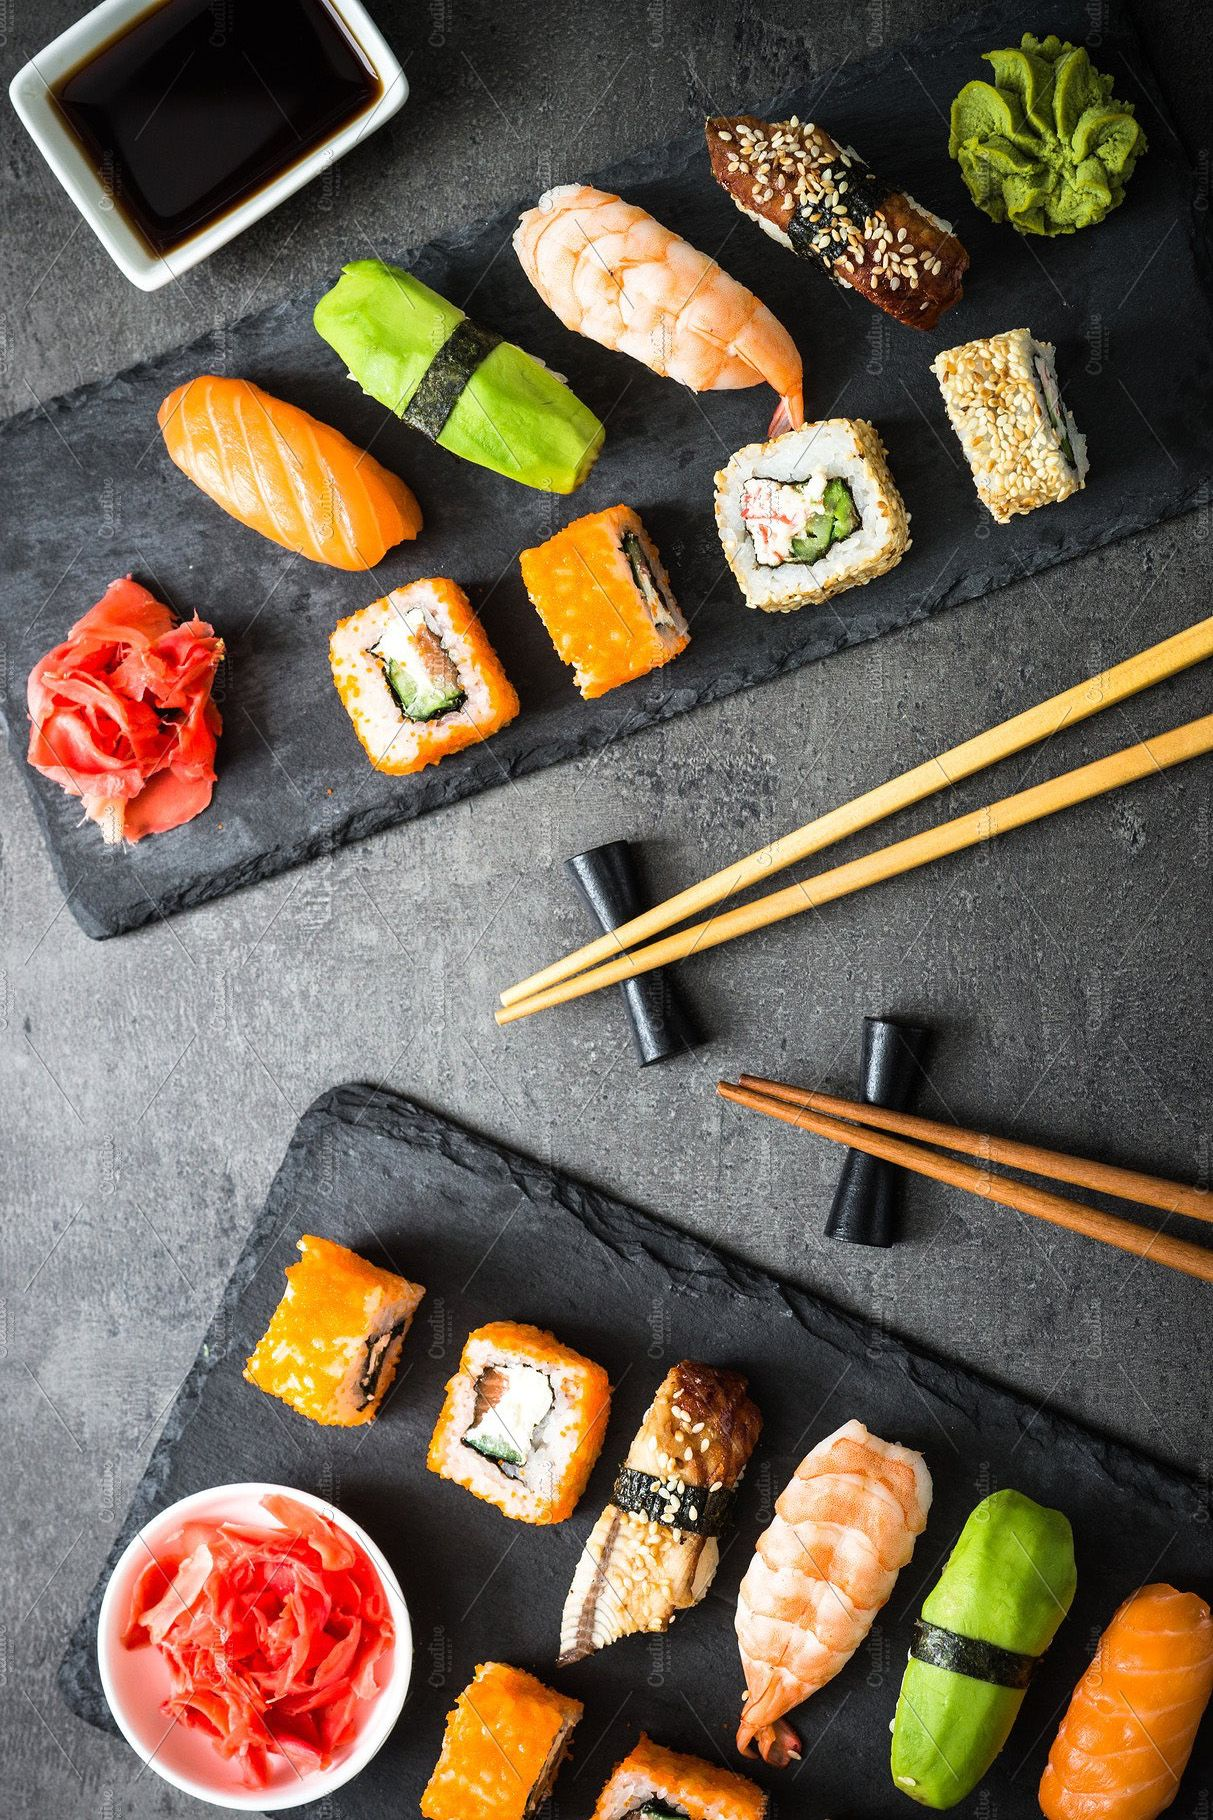 Sushi Food Foodporn Curated Stock Photo Japanese Food Photography Asian Food Photography Japan Food